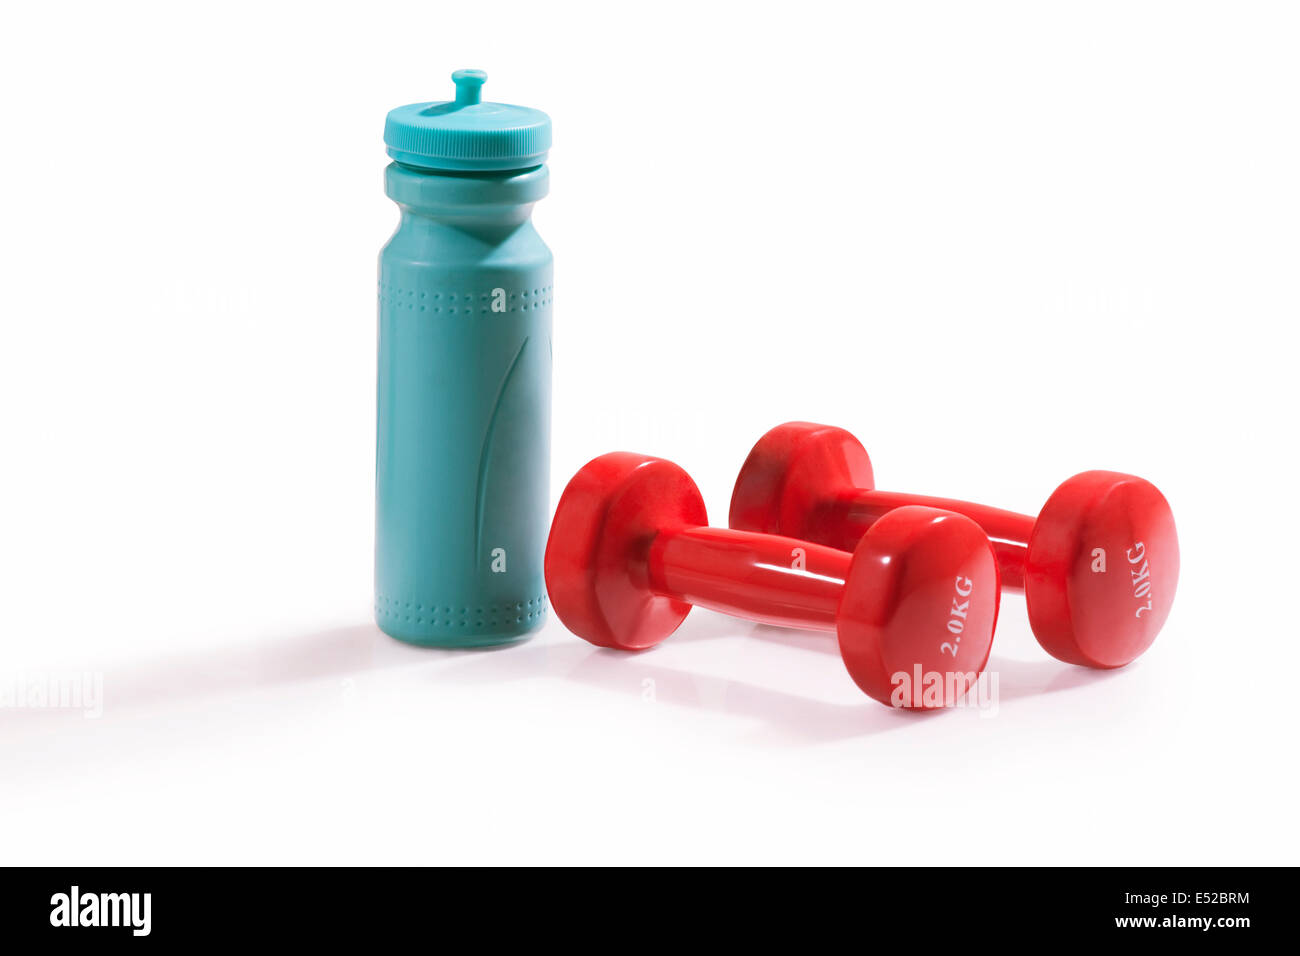 Red dumbbells and water bottle isolated over white background - Stock Image